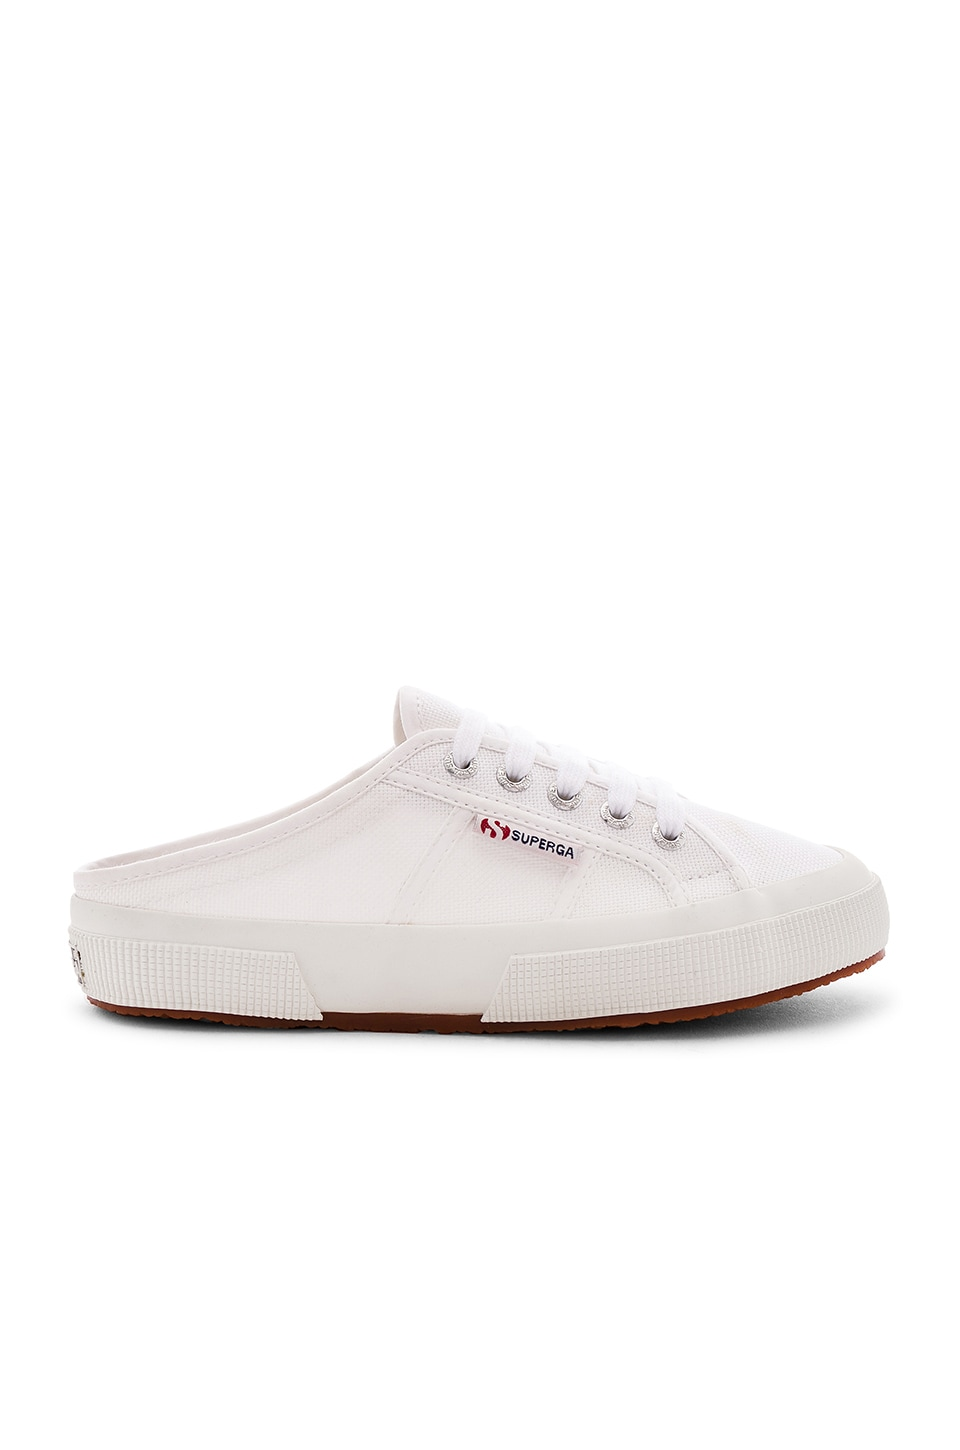 Superga Slip On Sneaker in White